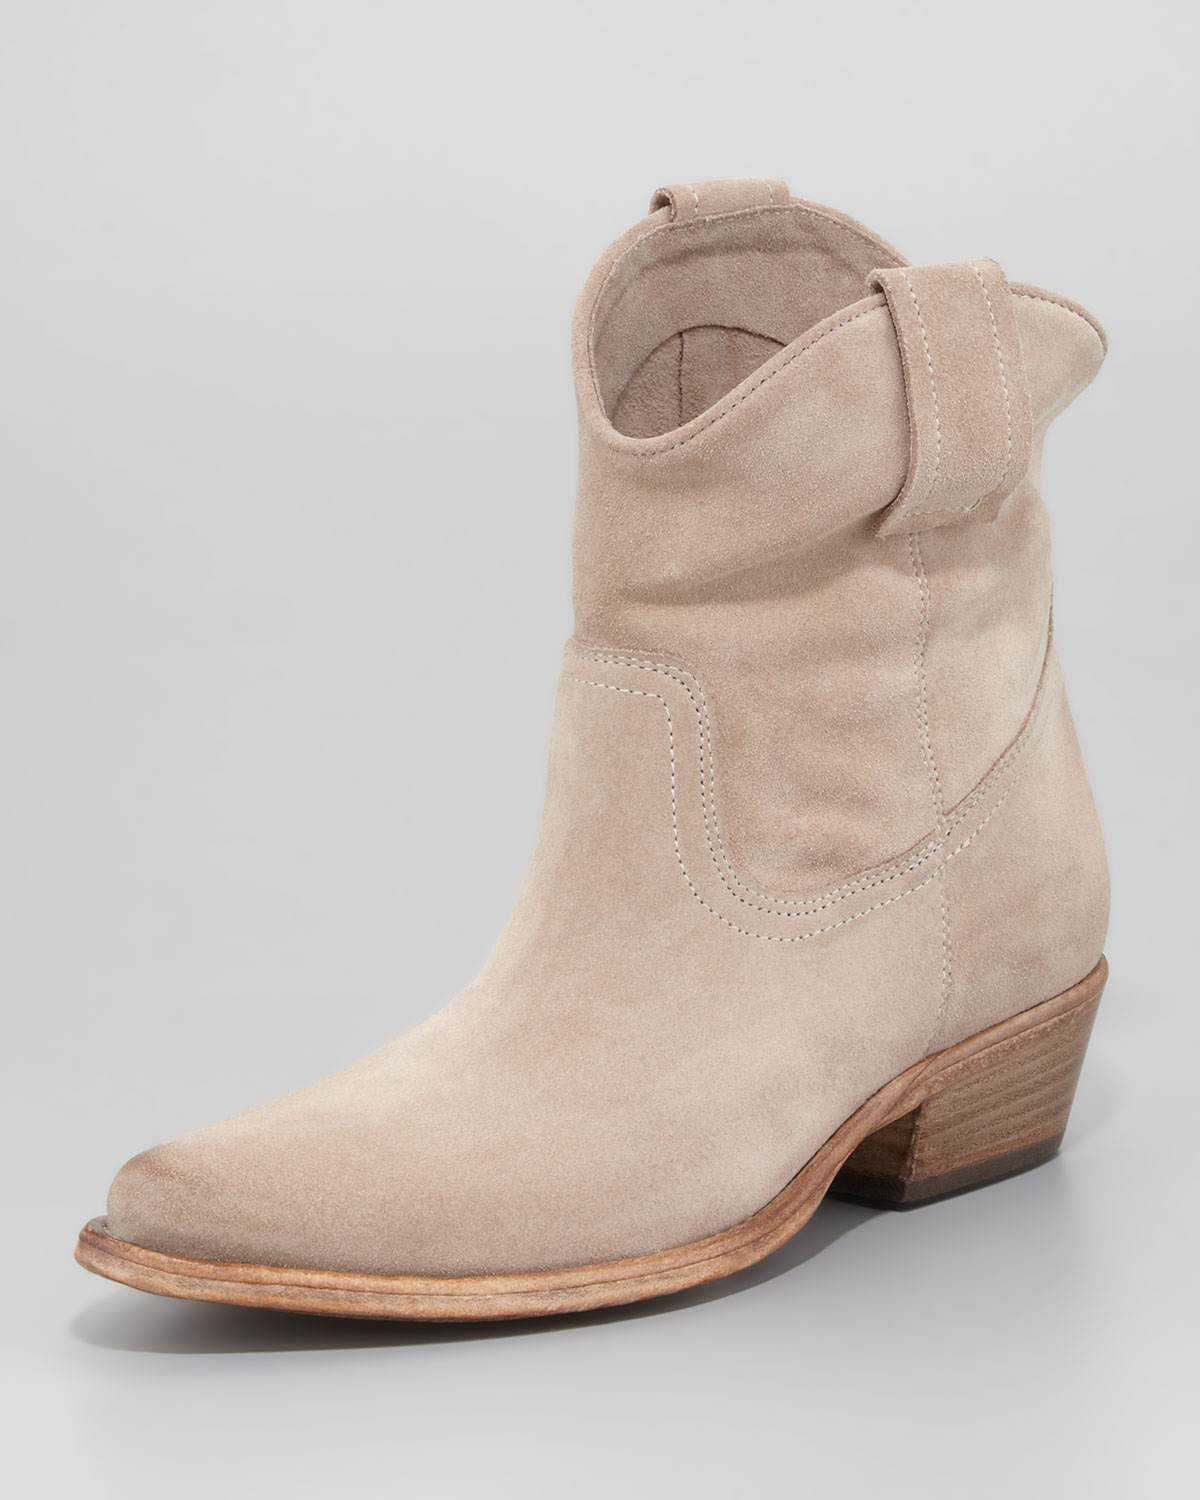 ac1d132e648 Lyst - Alberto Fermani Suede Western Ankle Bootie in Natural